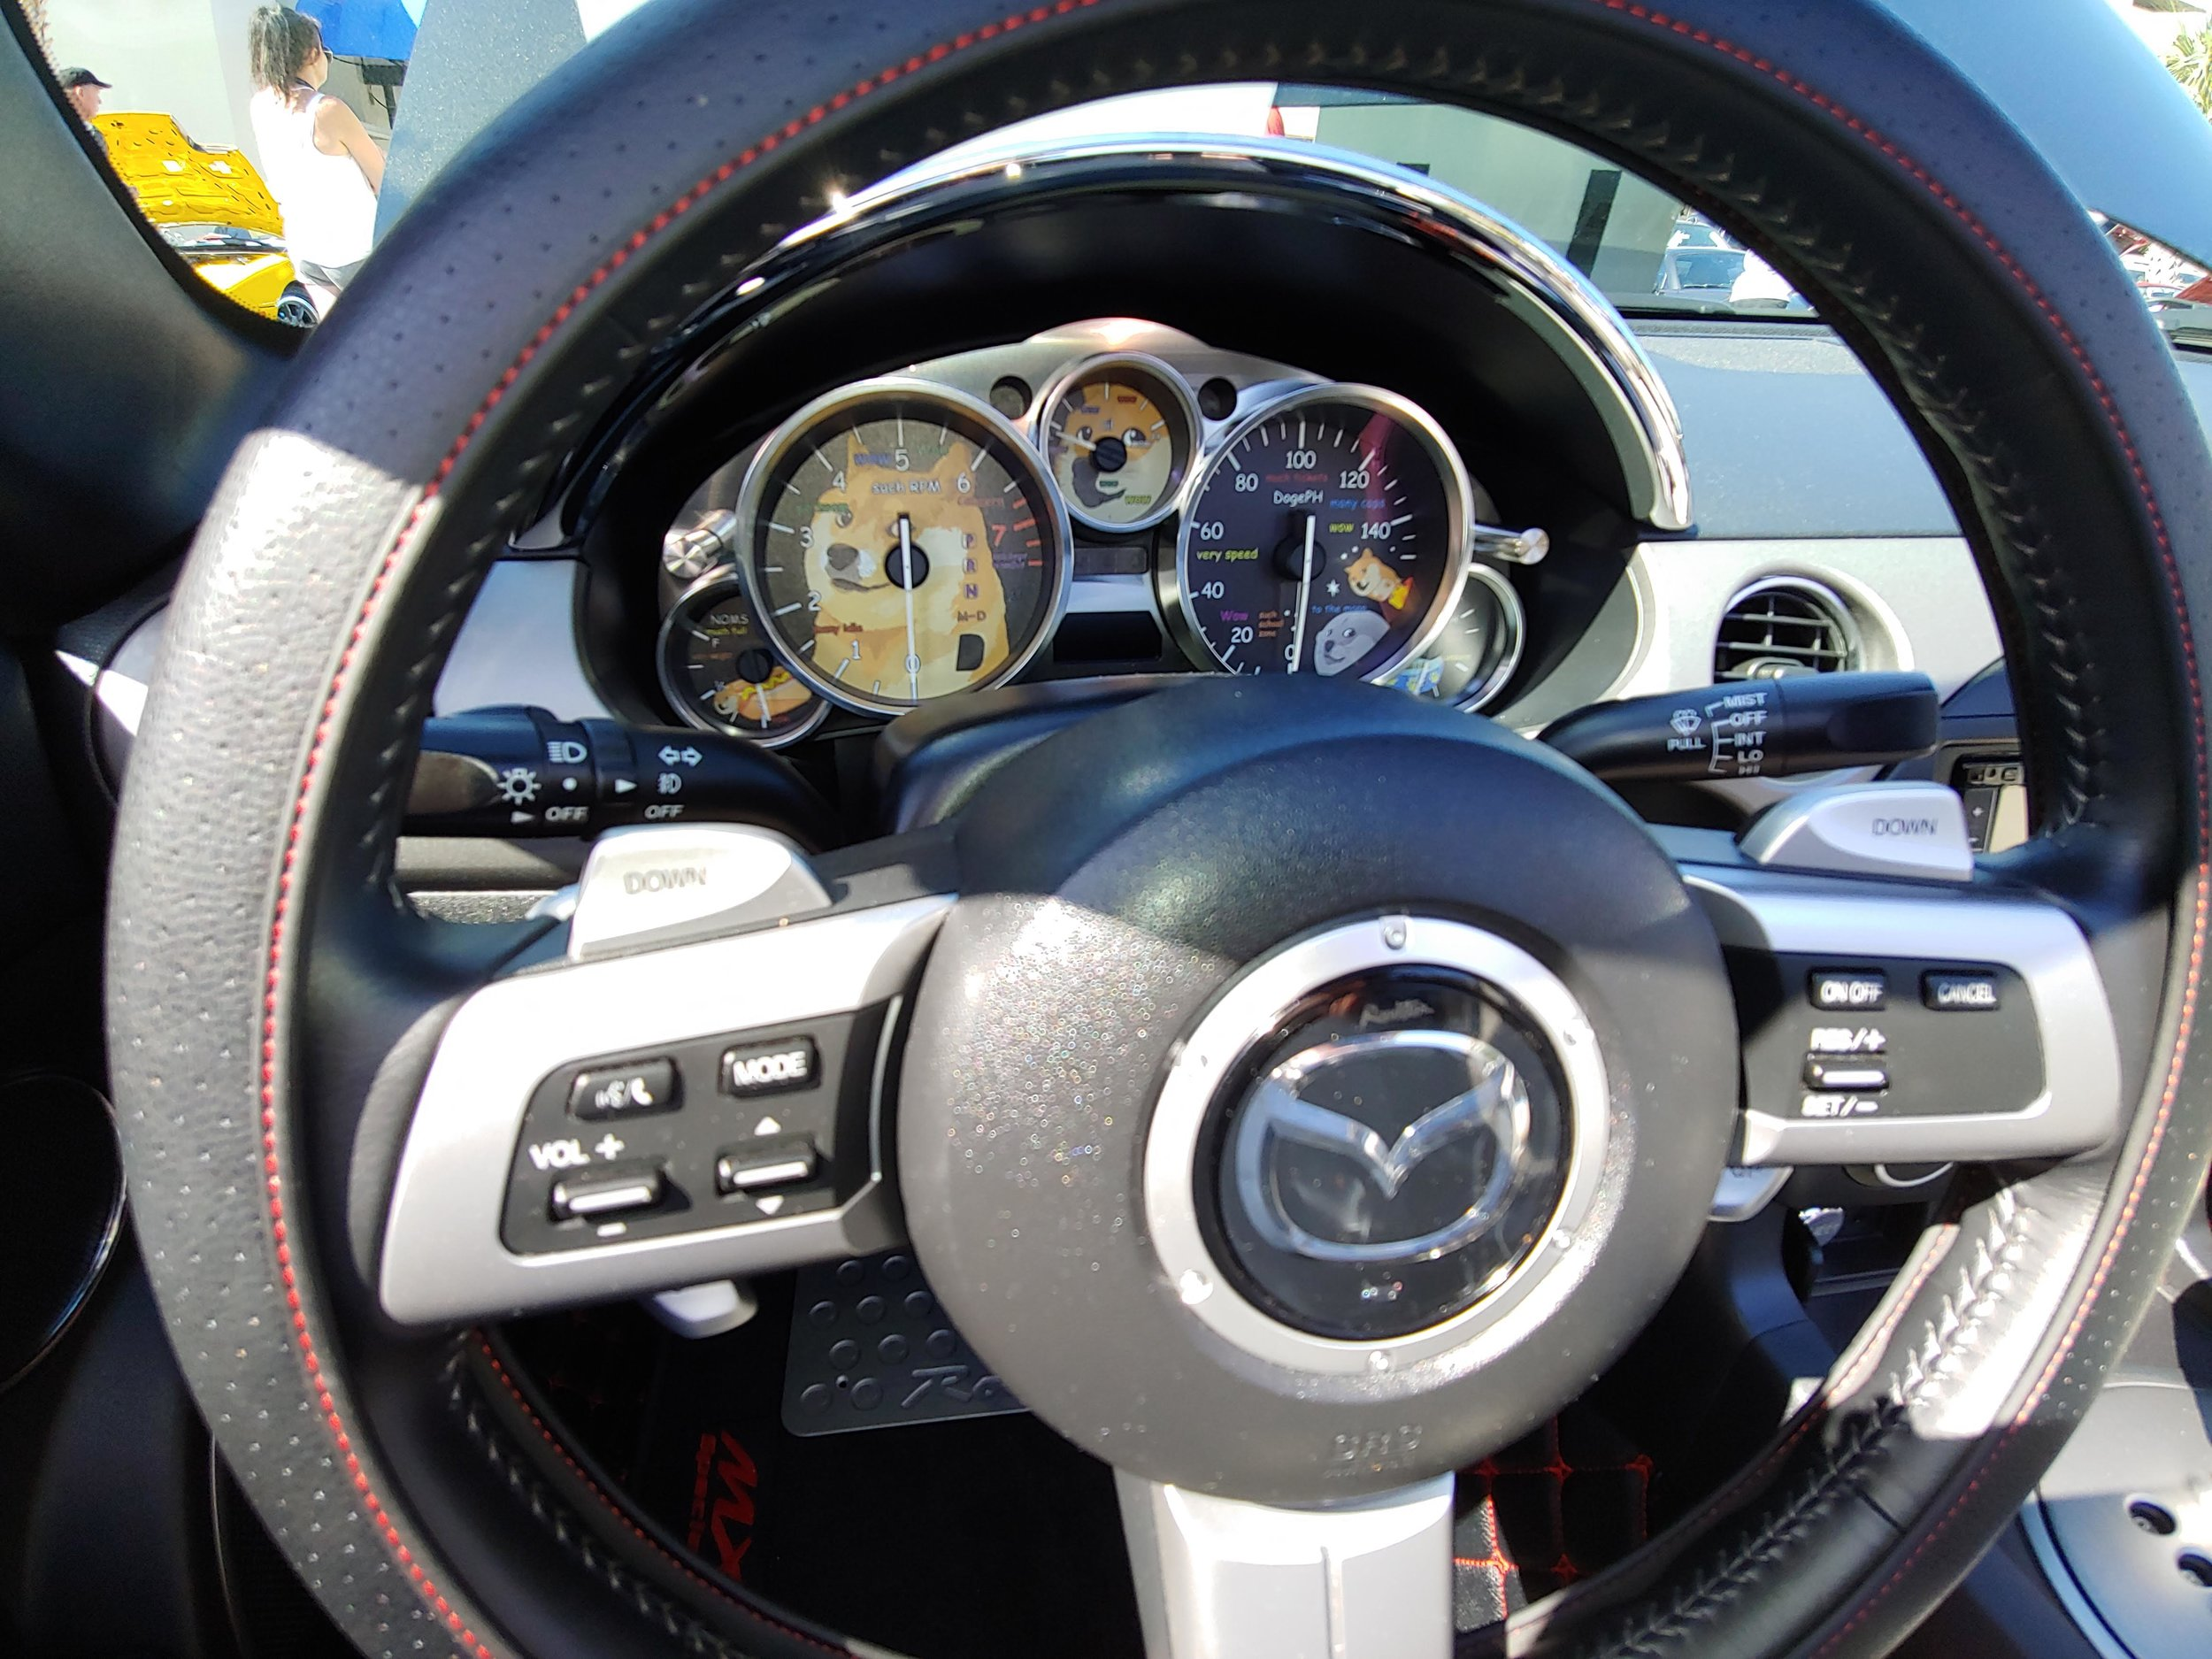 Some drivers even dress up their instrument panel. So many idea you can get from a Car Show.